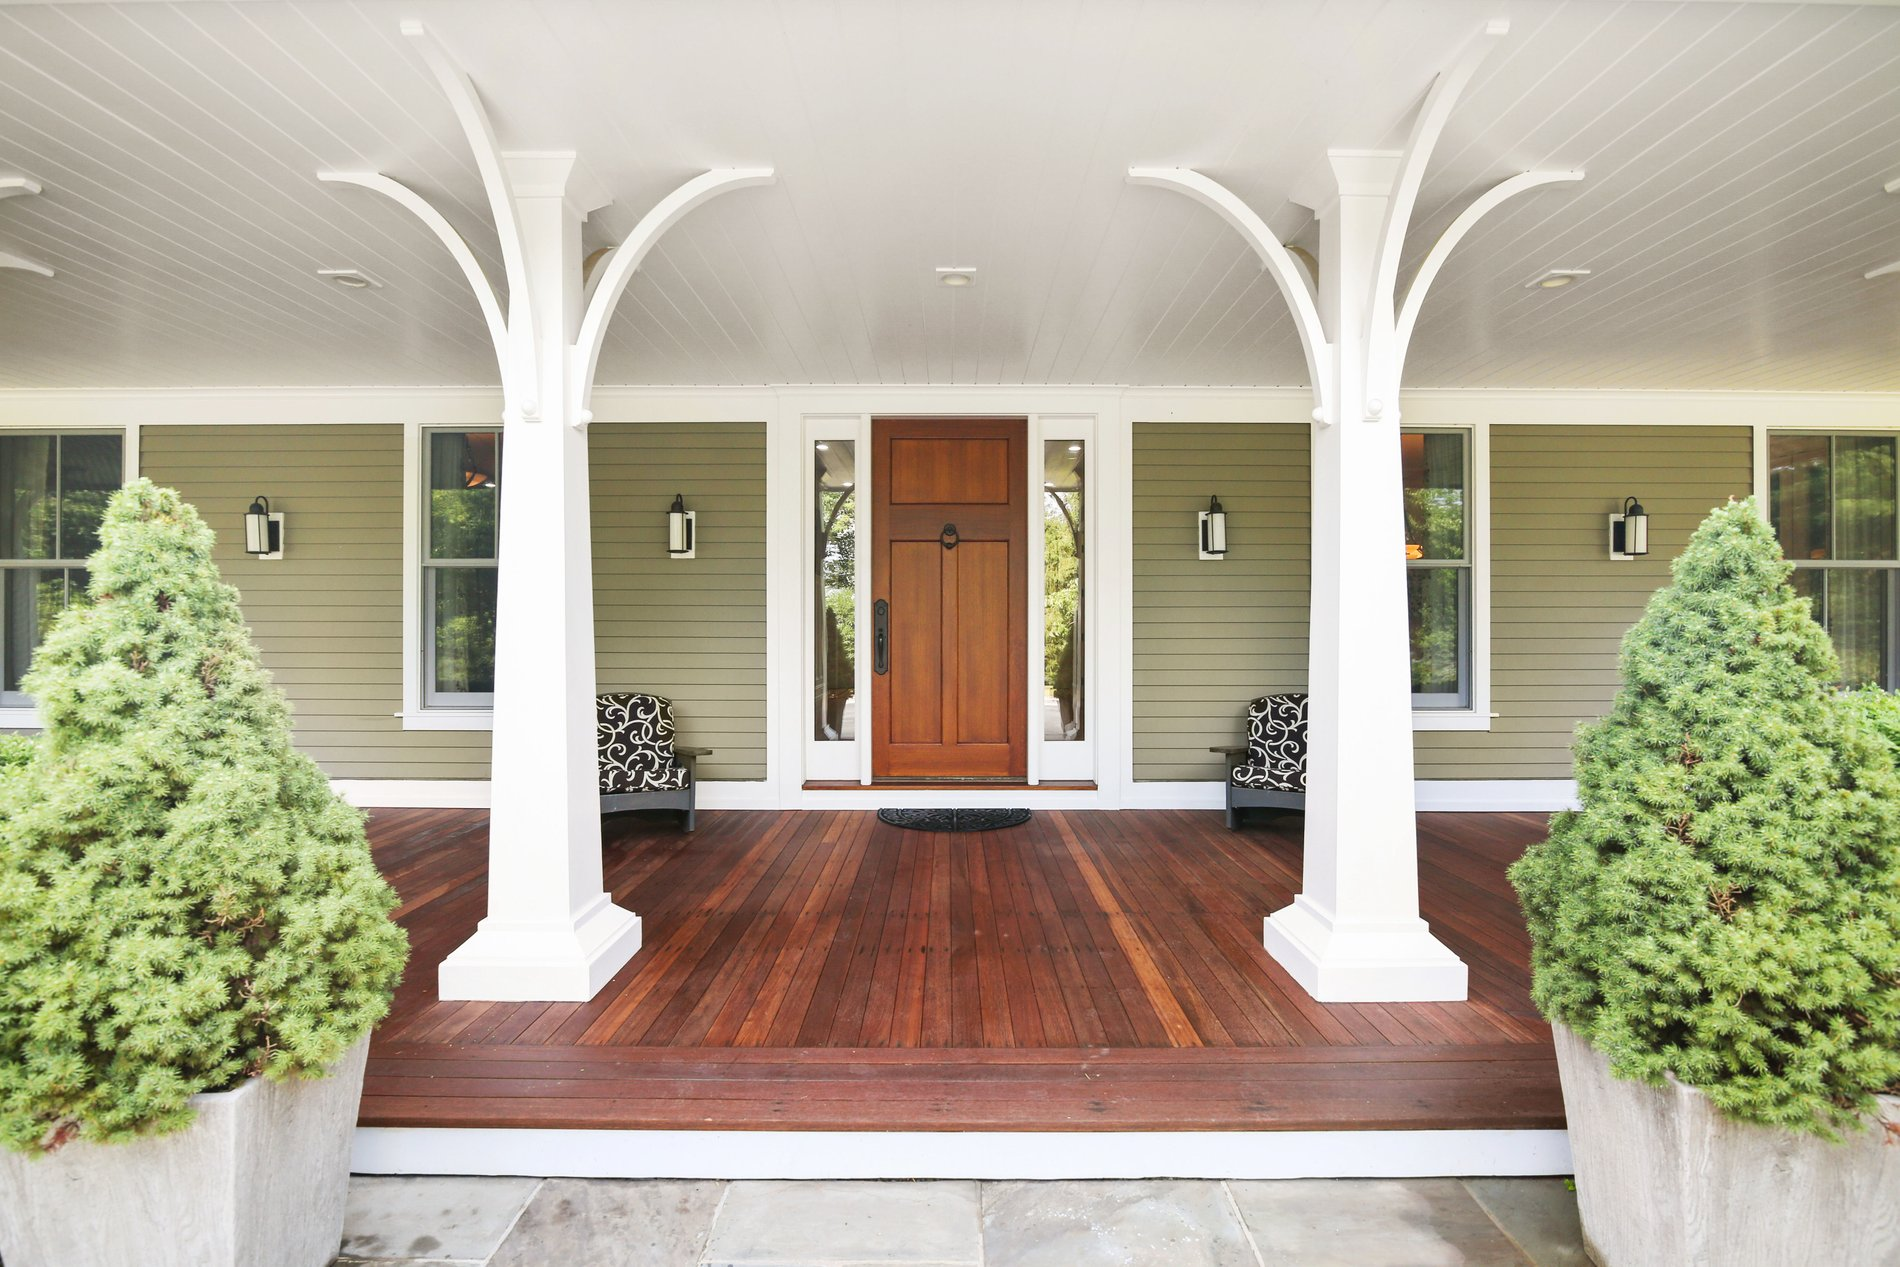 Covered front porch with stained wood flooring.